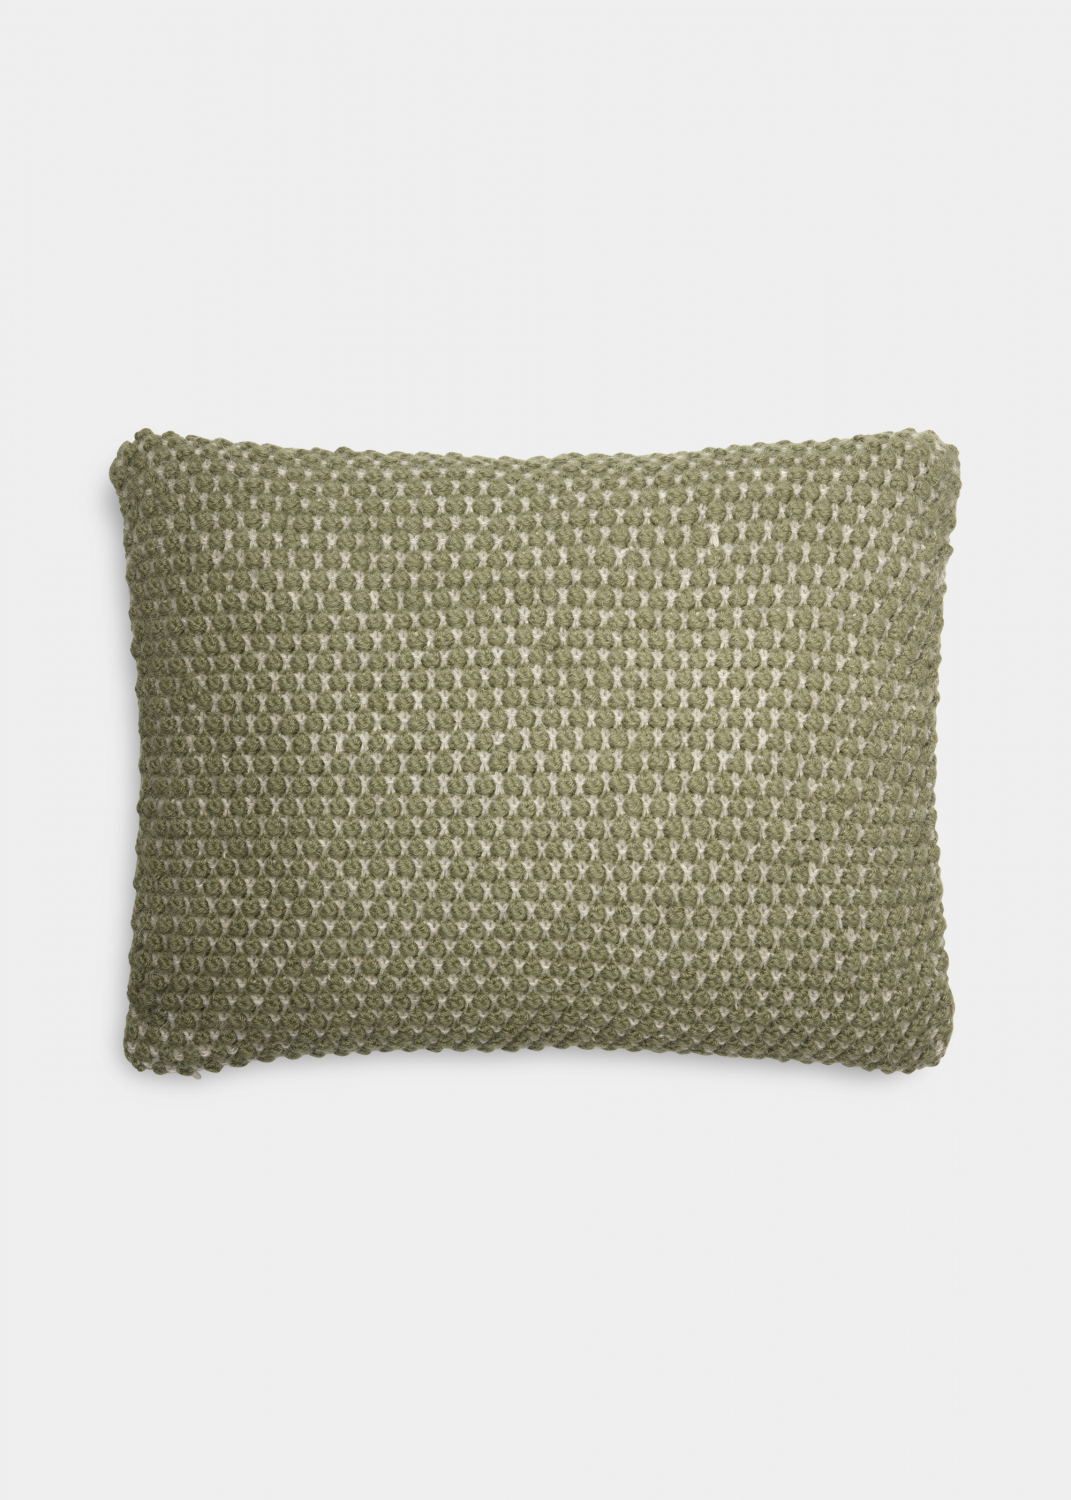 Cushions - Heather Classic pillow (30x40)